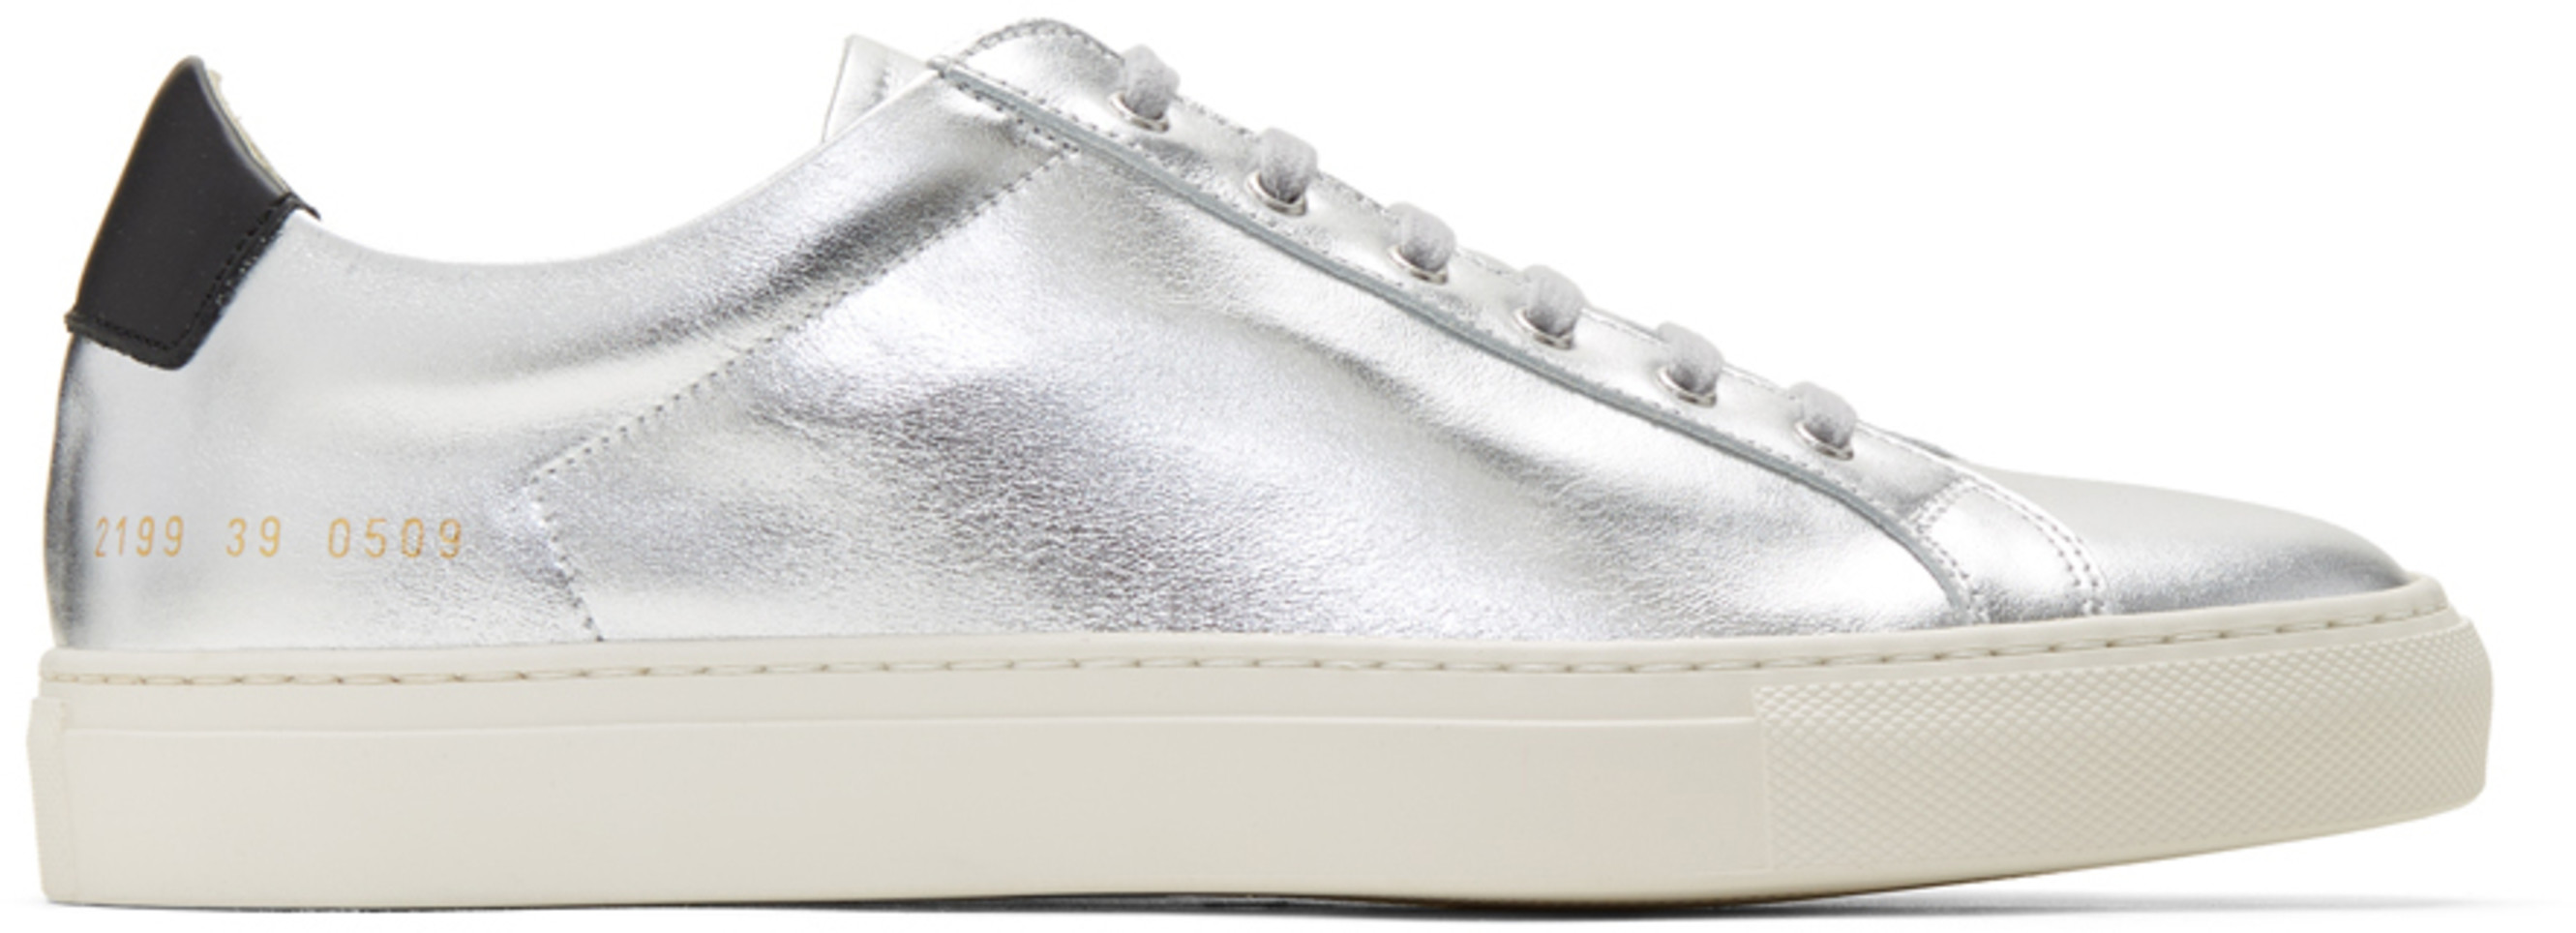 c18a9c85fd6b2 Common Projects for Men SS19 Collection